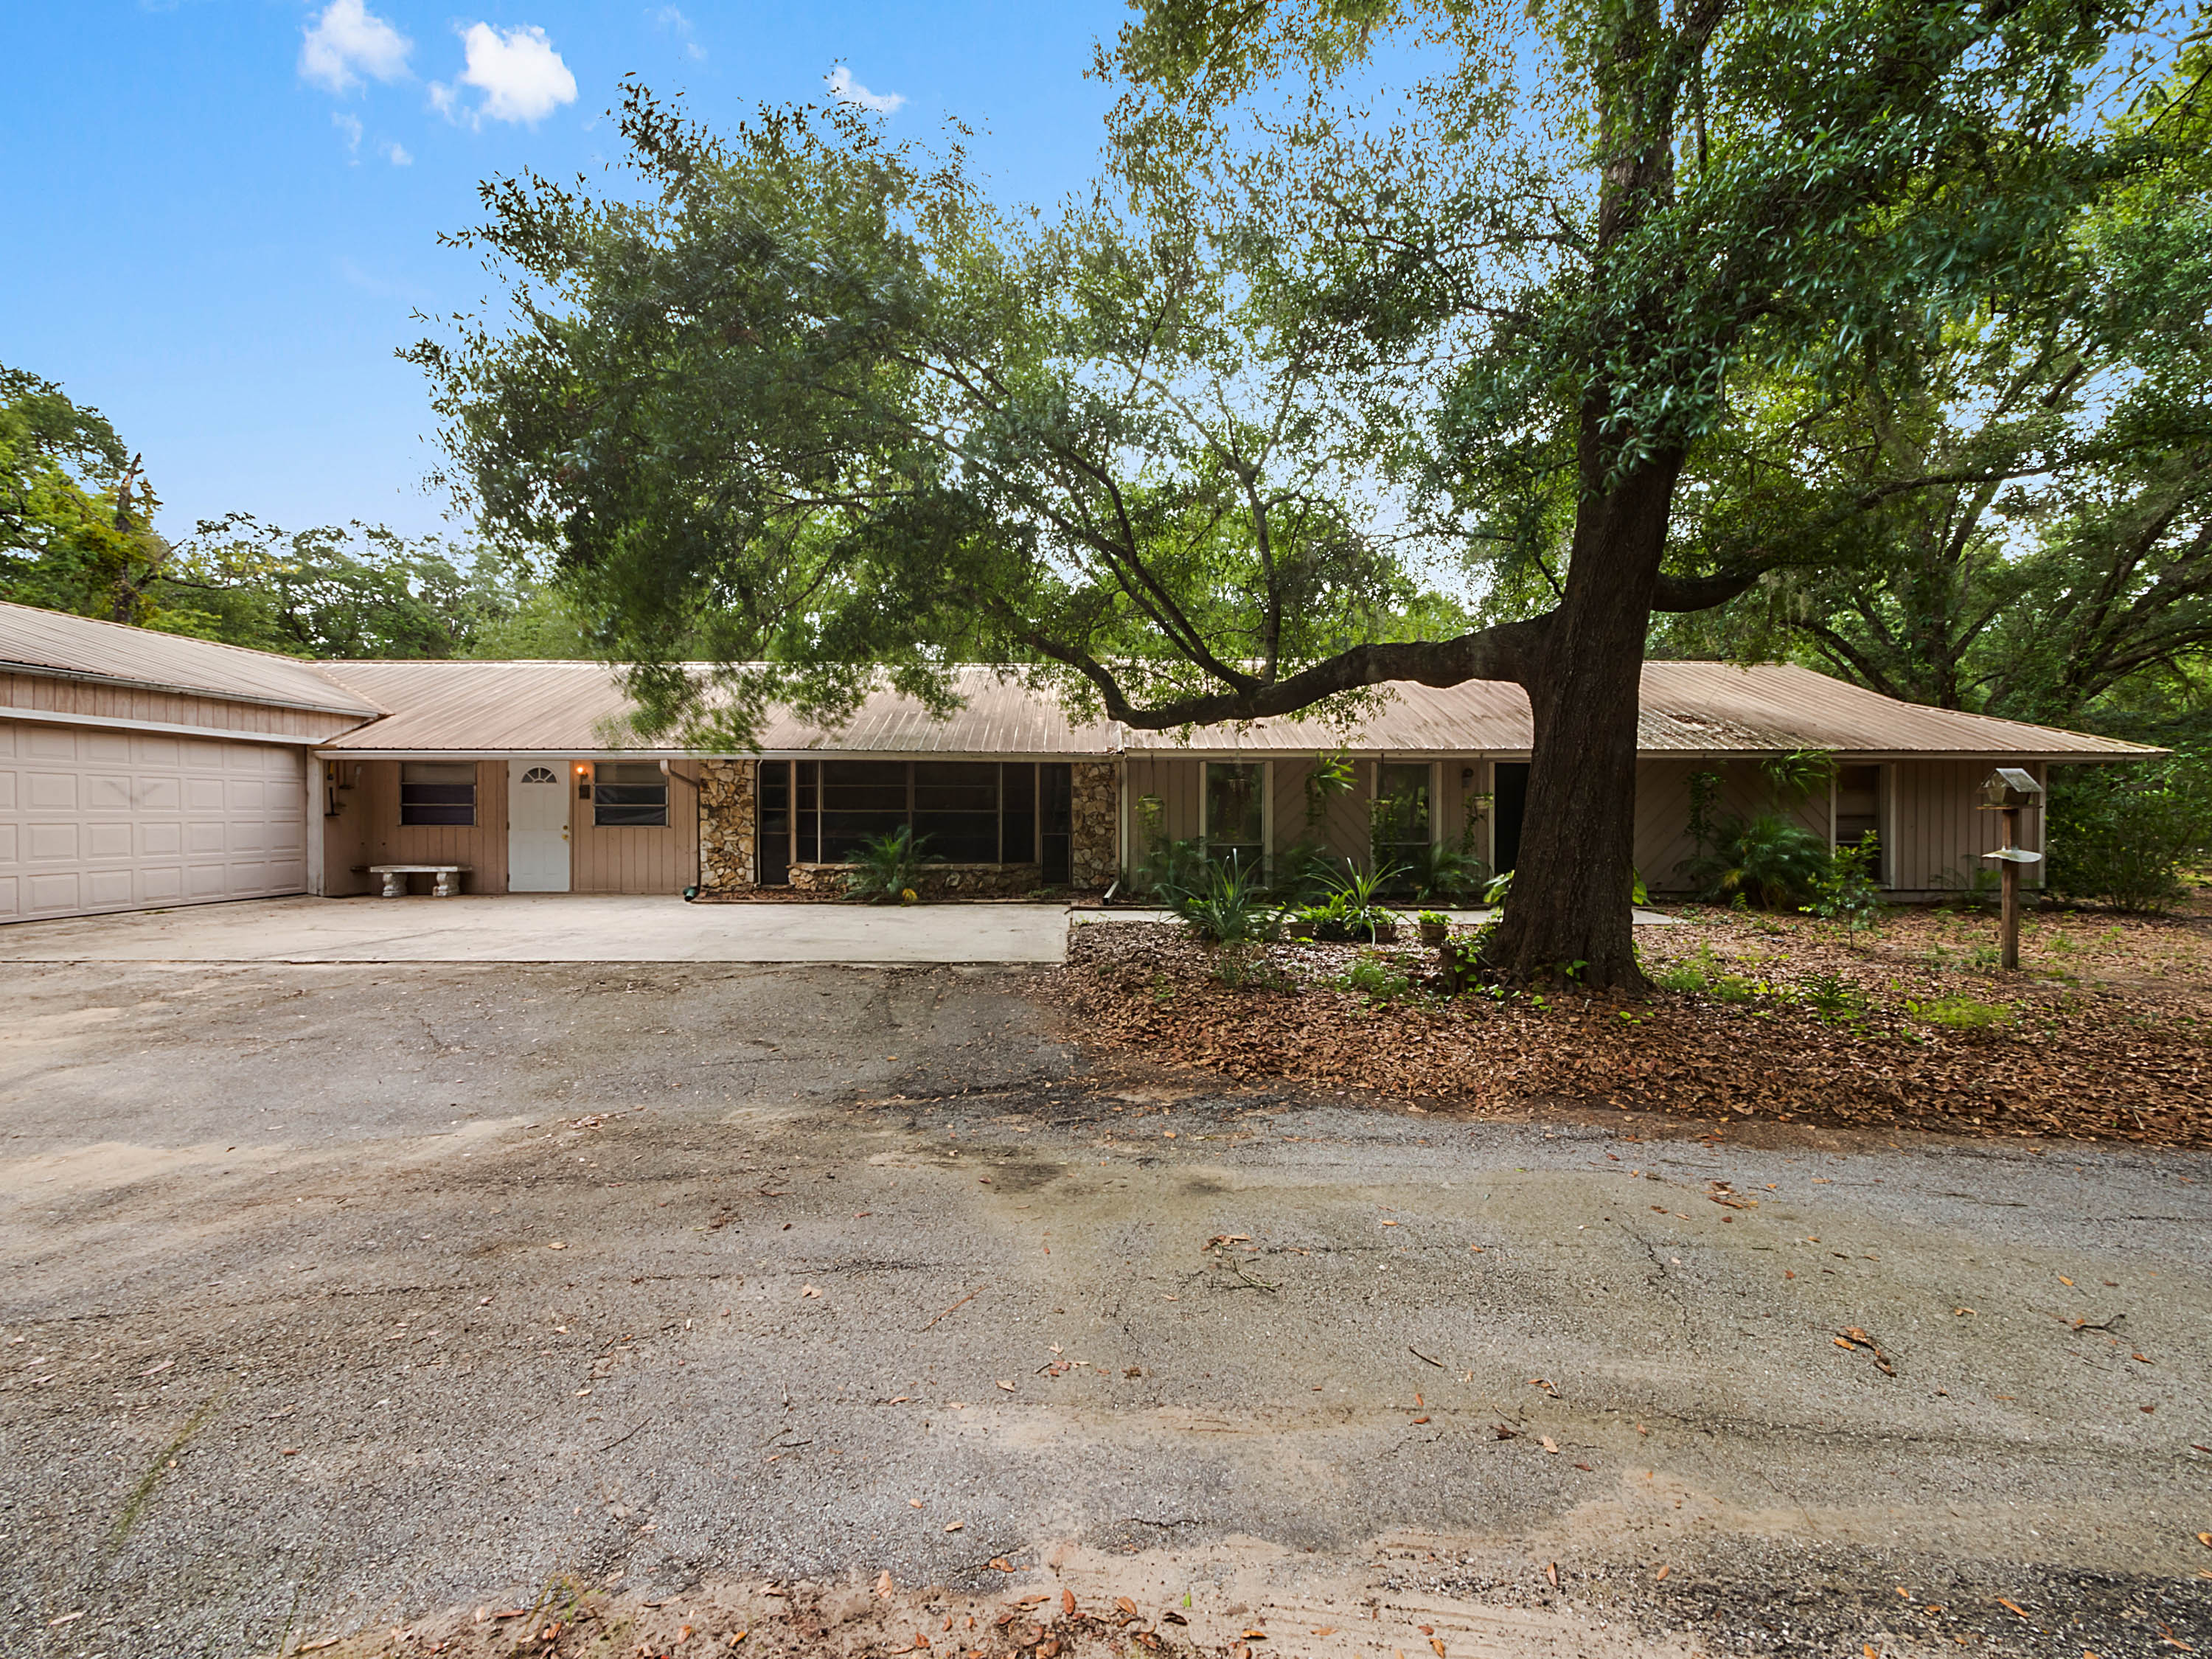 3307-little-joe-court--apopka--fl-32712---01.jpg